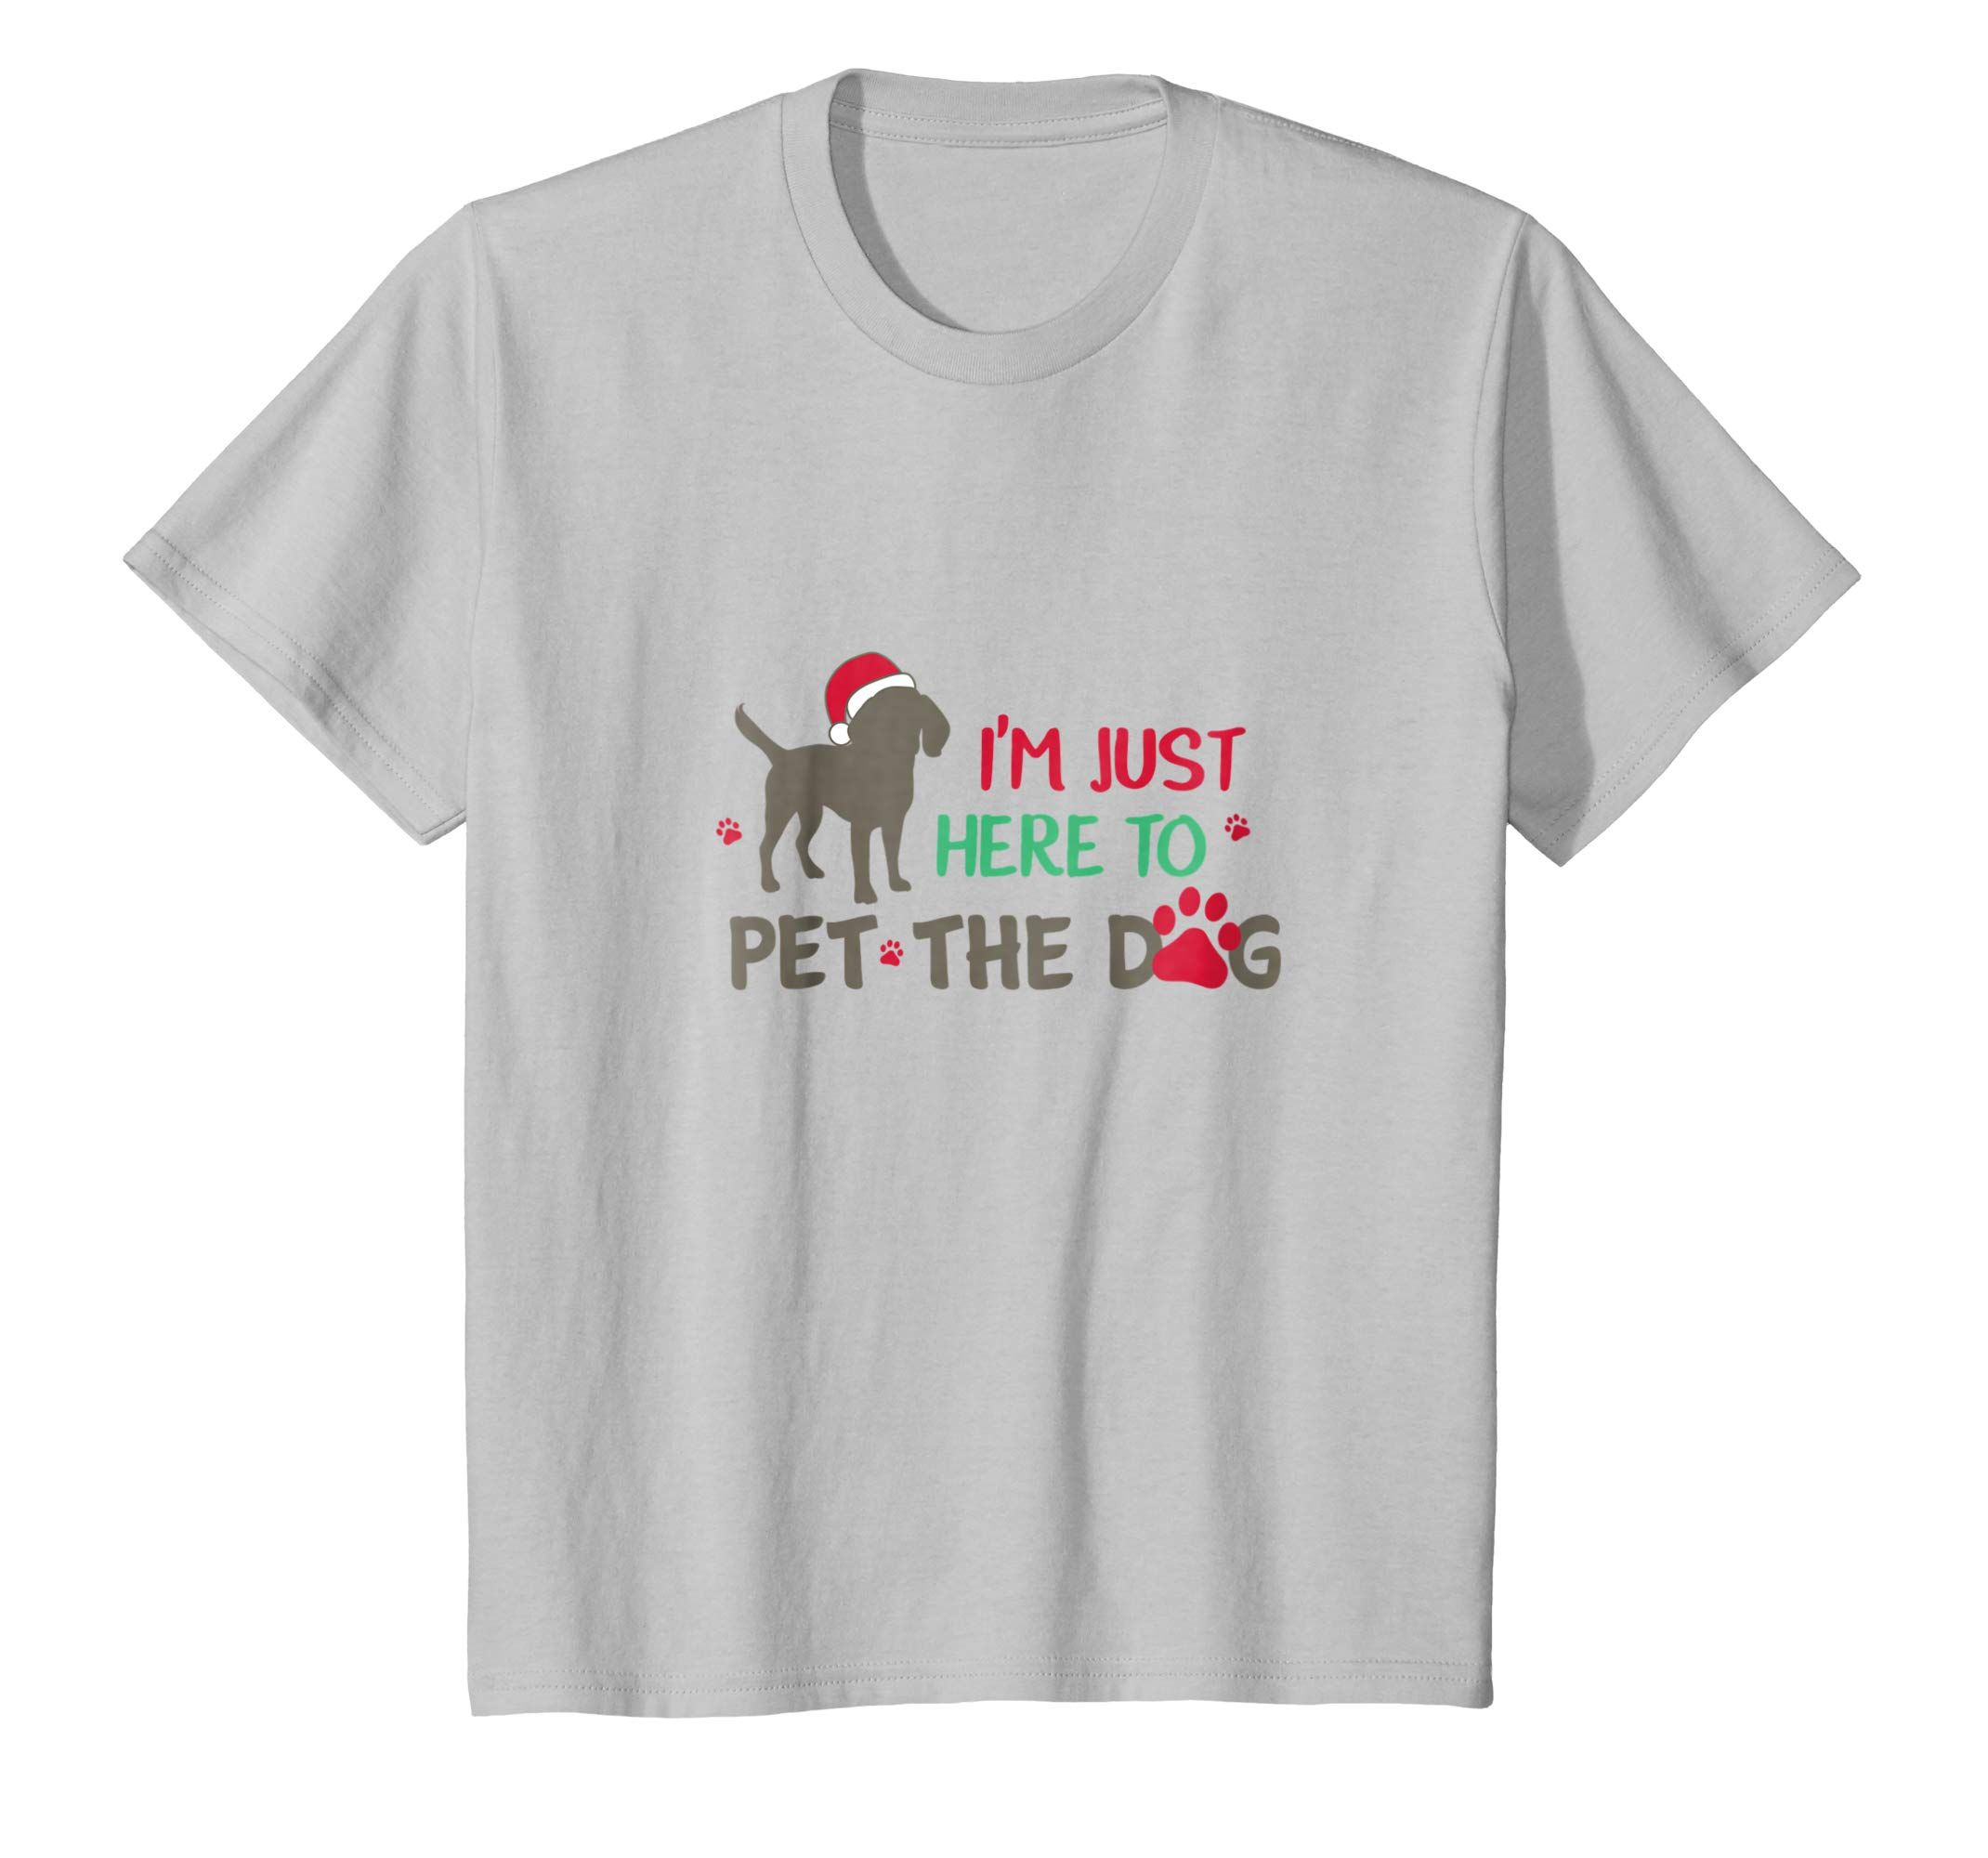 Amazon Com I M Just Here To Pet The Dog Funny Christmas T Shirt Clothing Funny Christmas Tshirts Christmas Tshirts Cat Tshirt